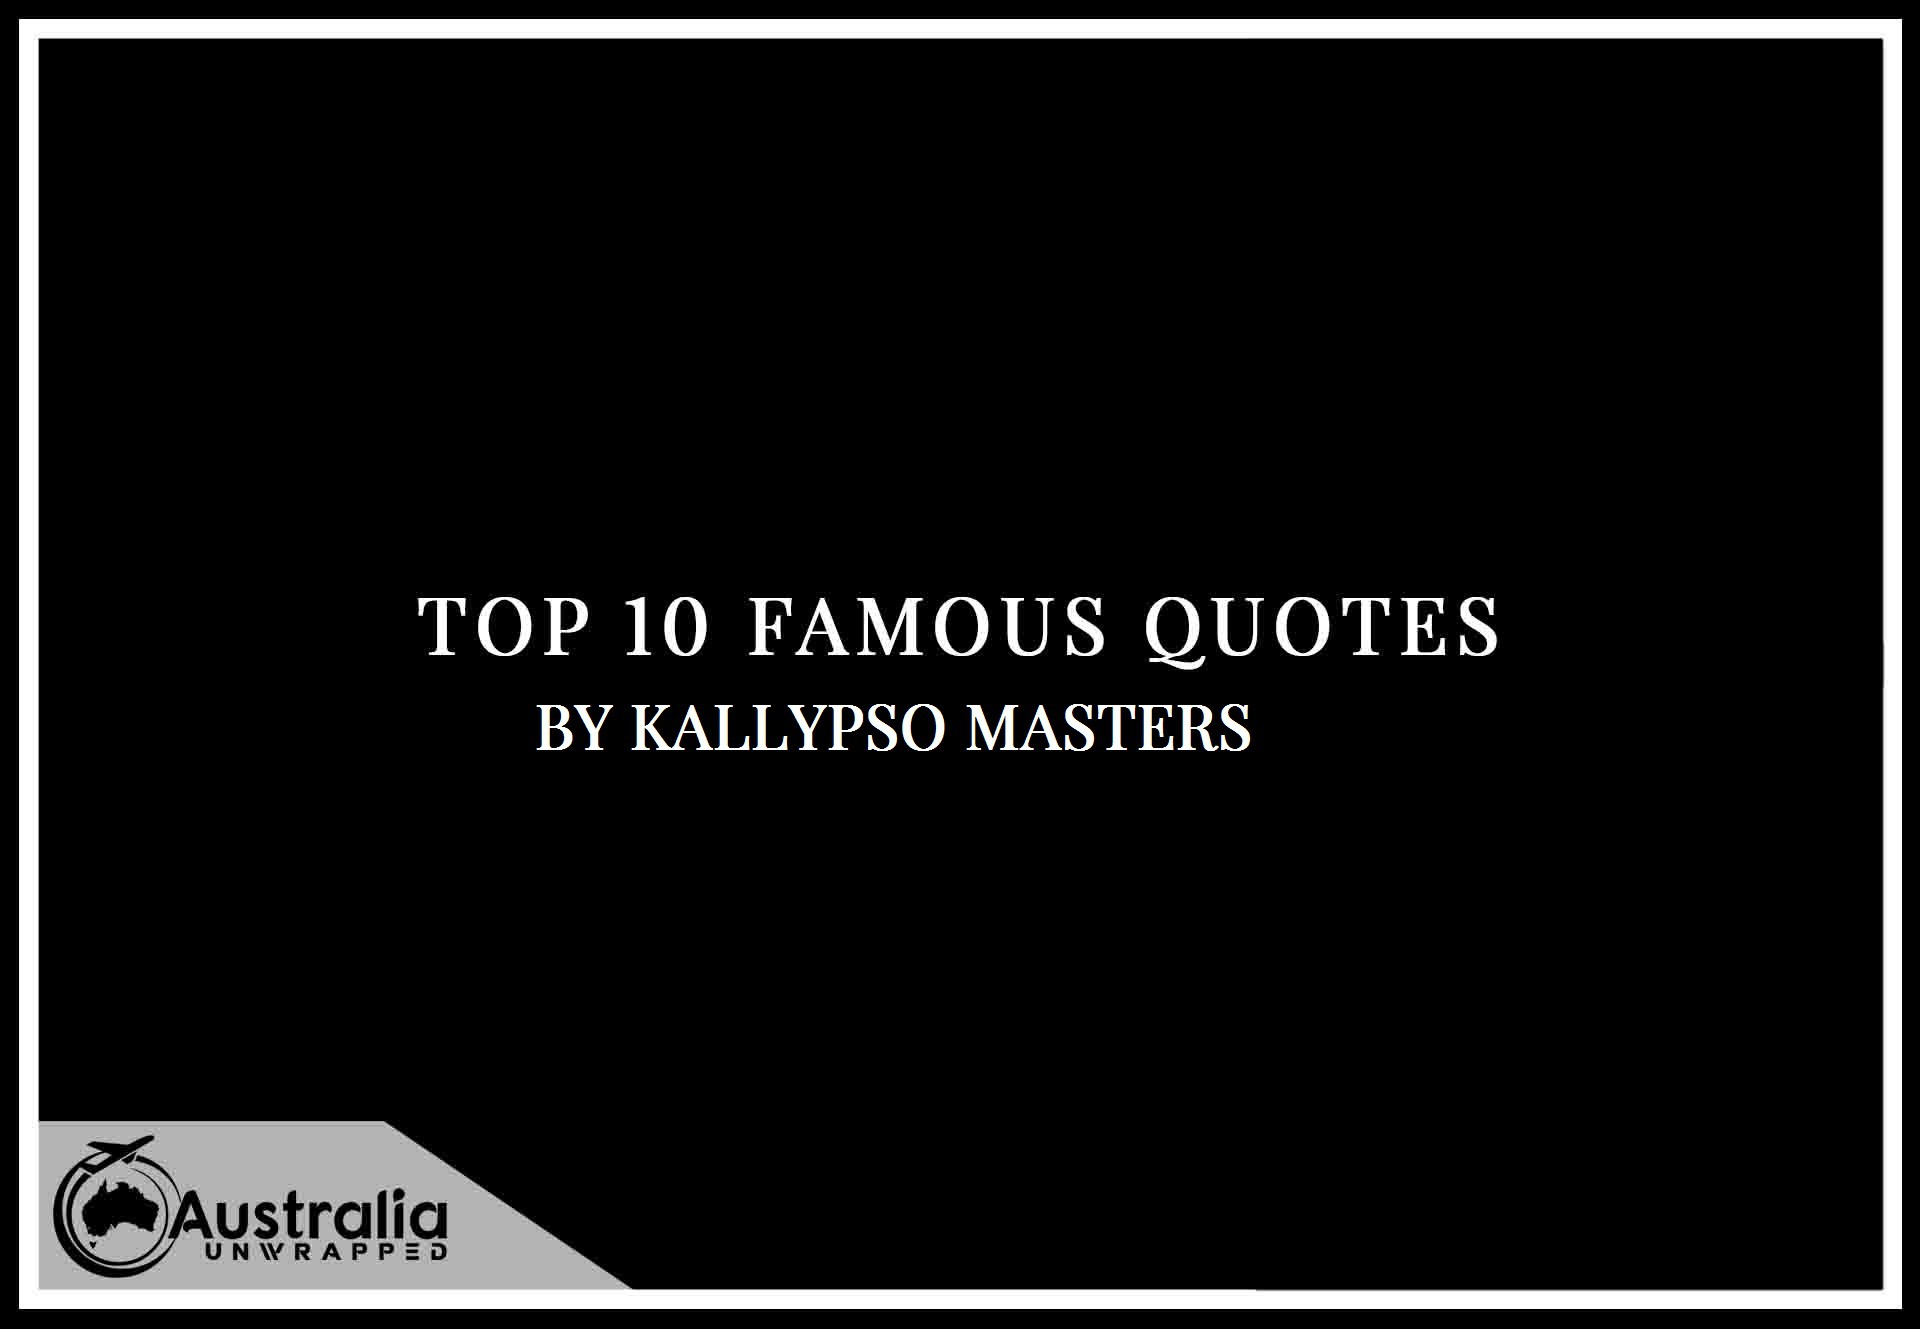 Kallypso Masters's Top 10 Popular and Famous Quotes